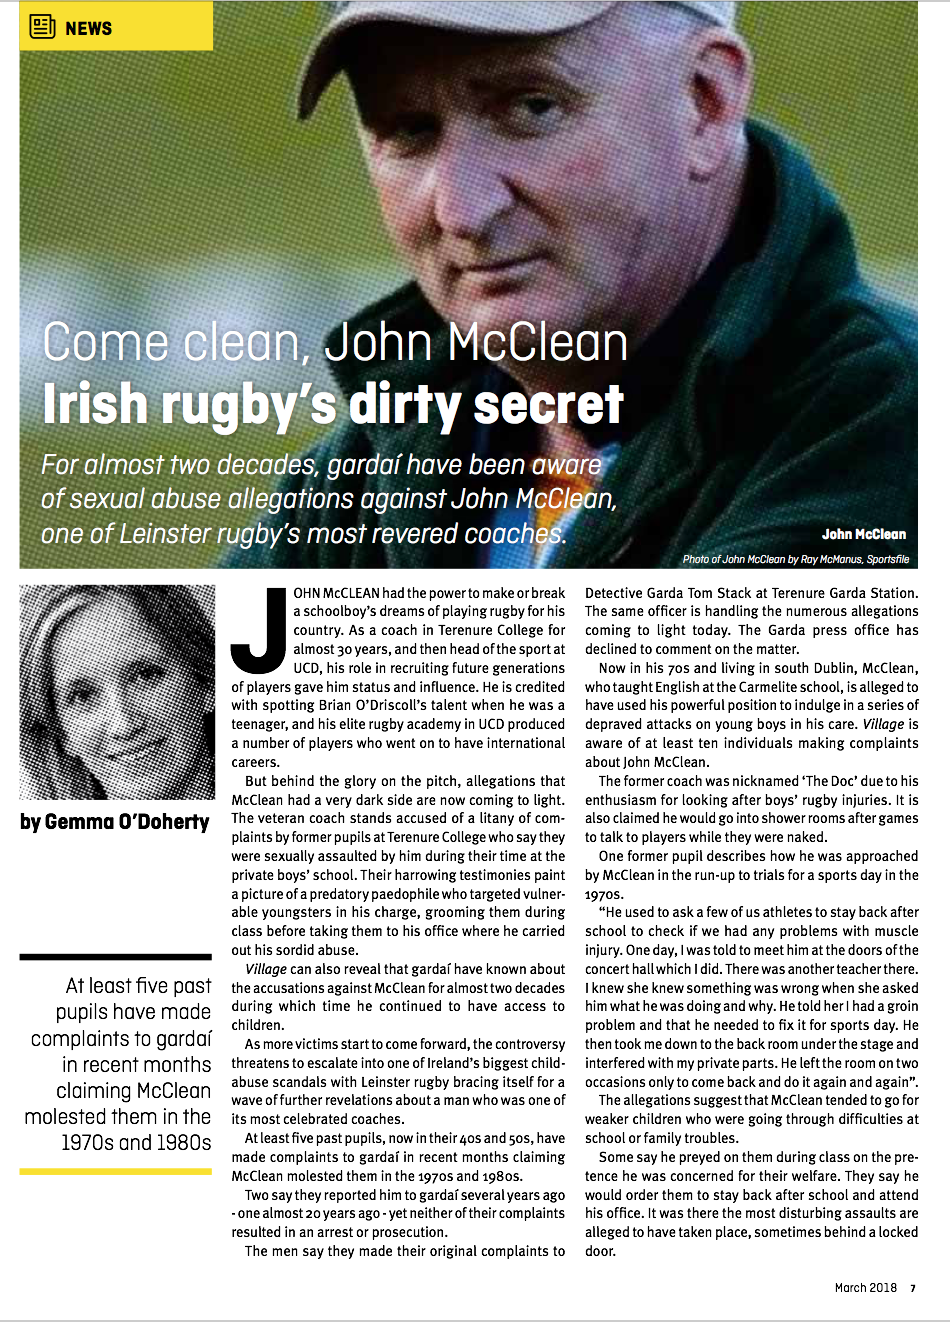 Come Clean John McClean Irish Rugby Dirtly Secret